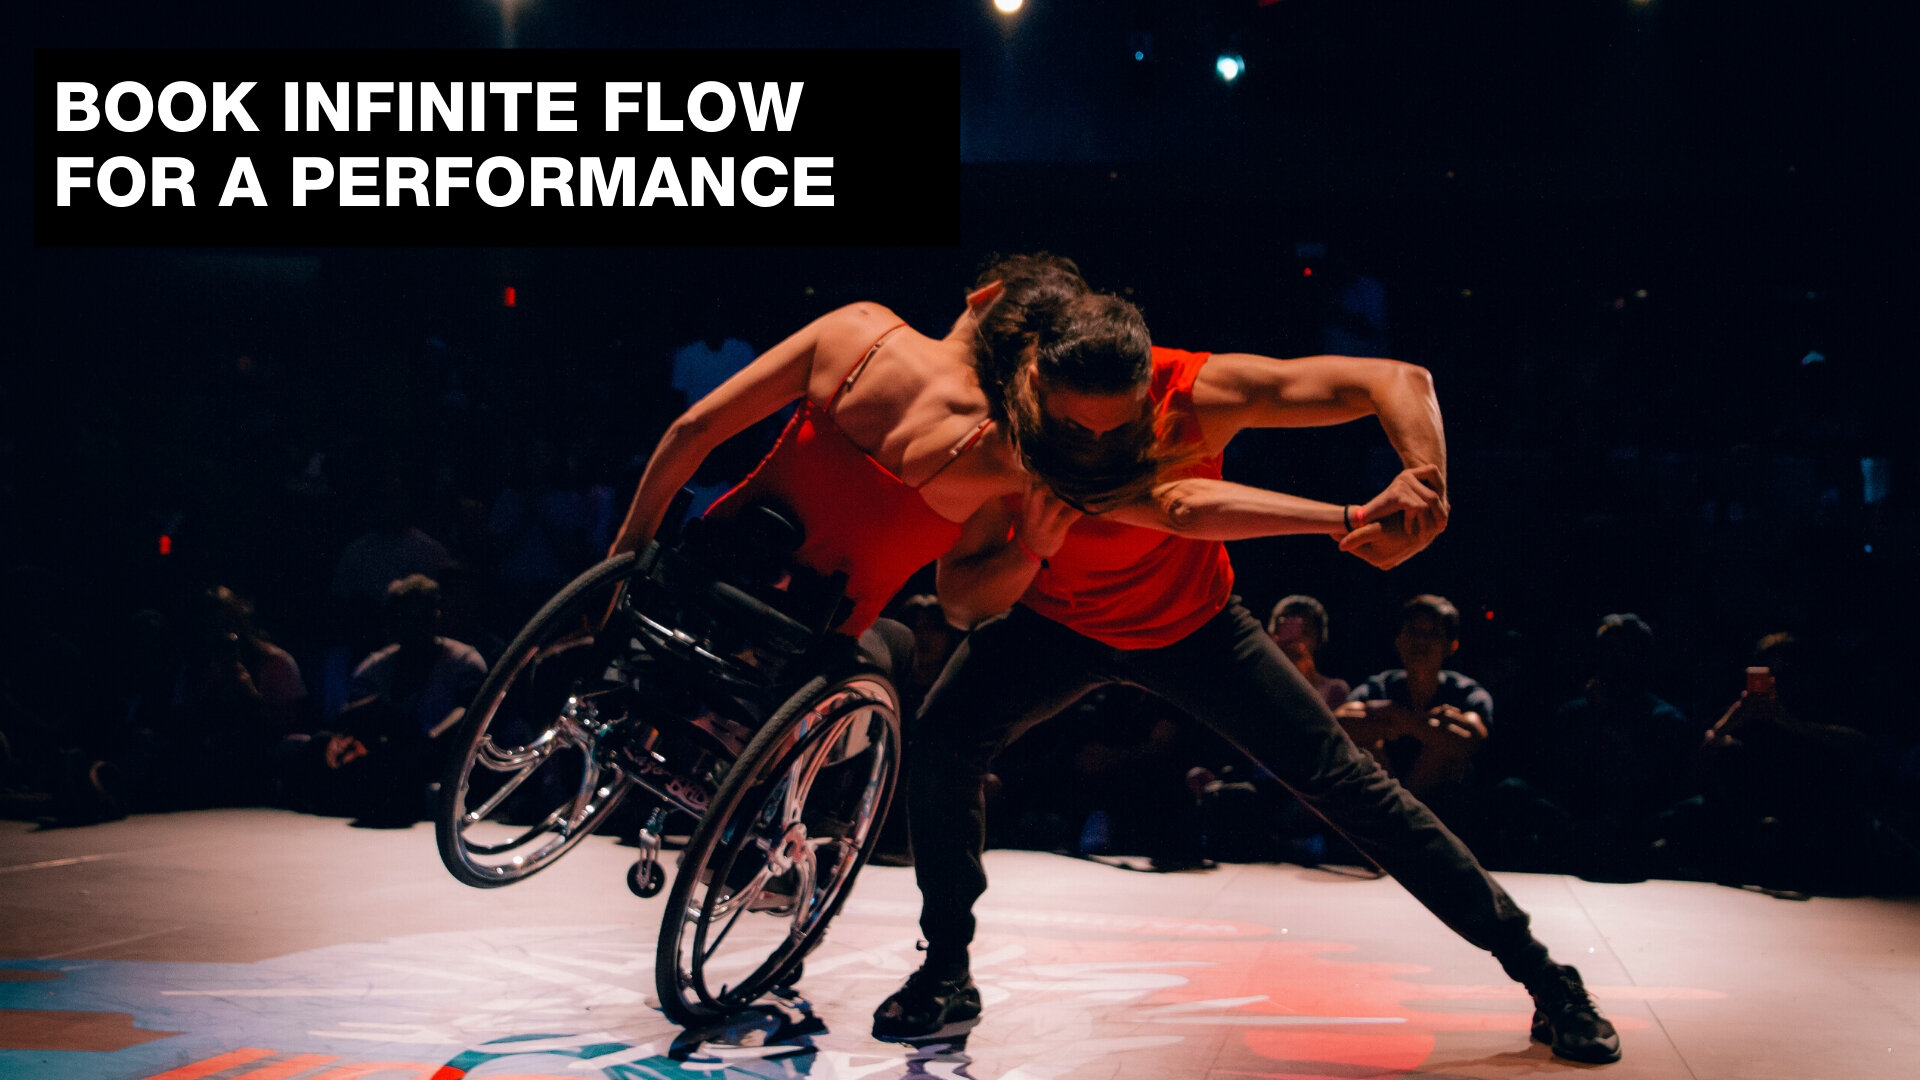 Book Infinite Flow for a Performance